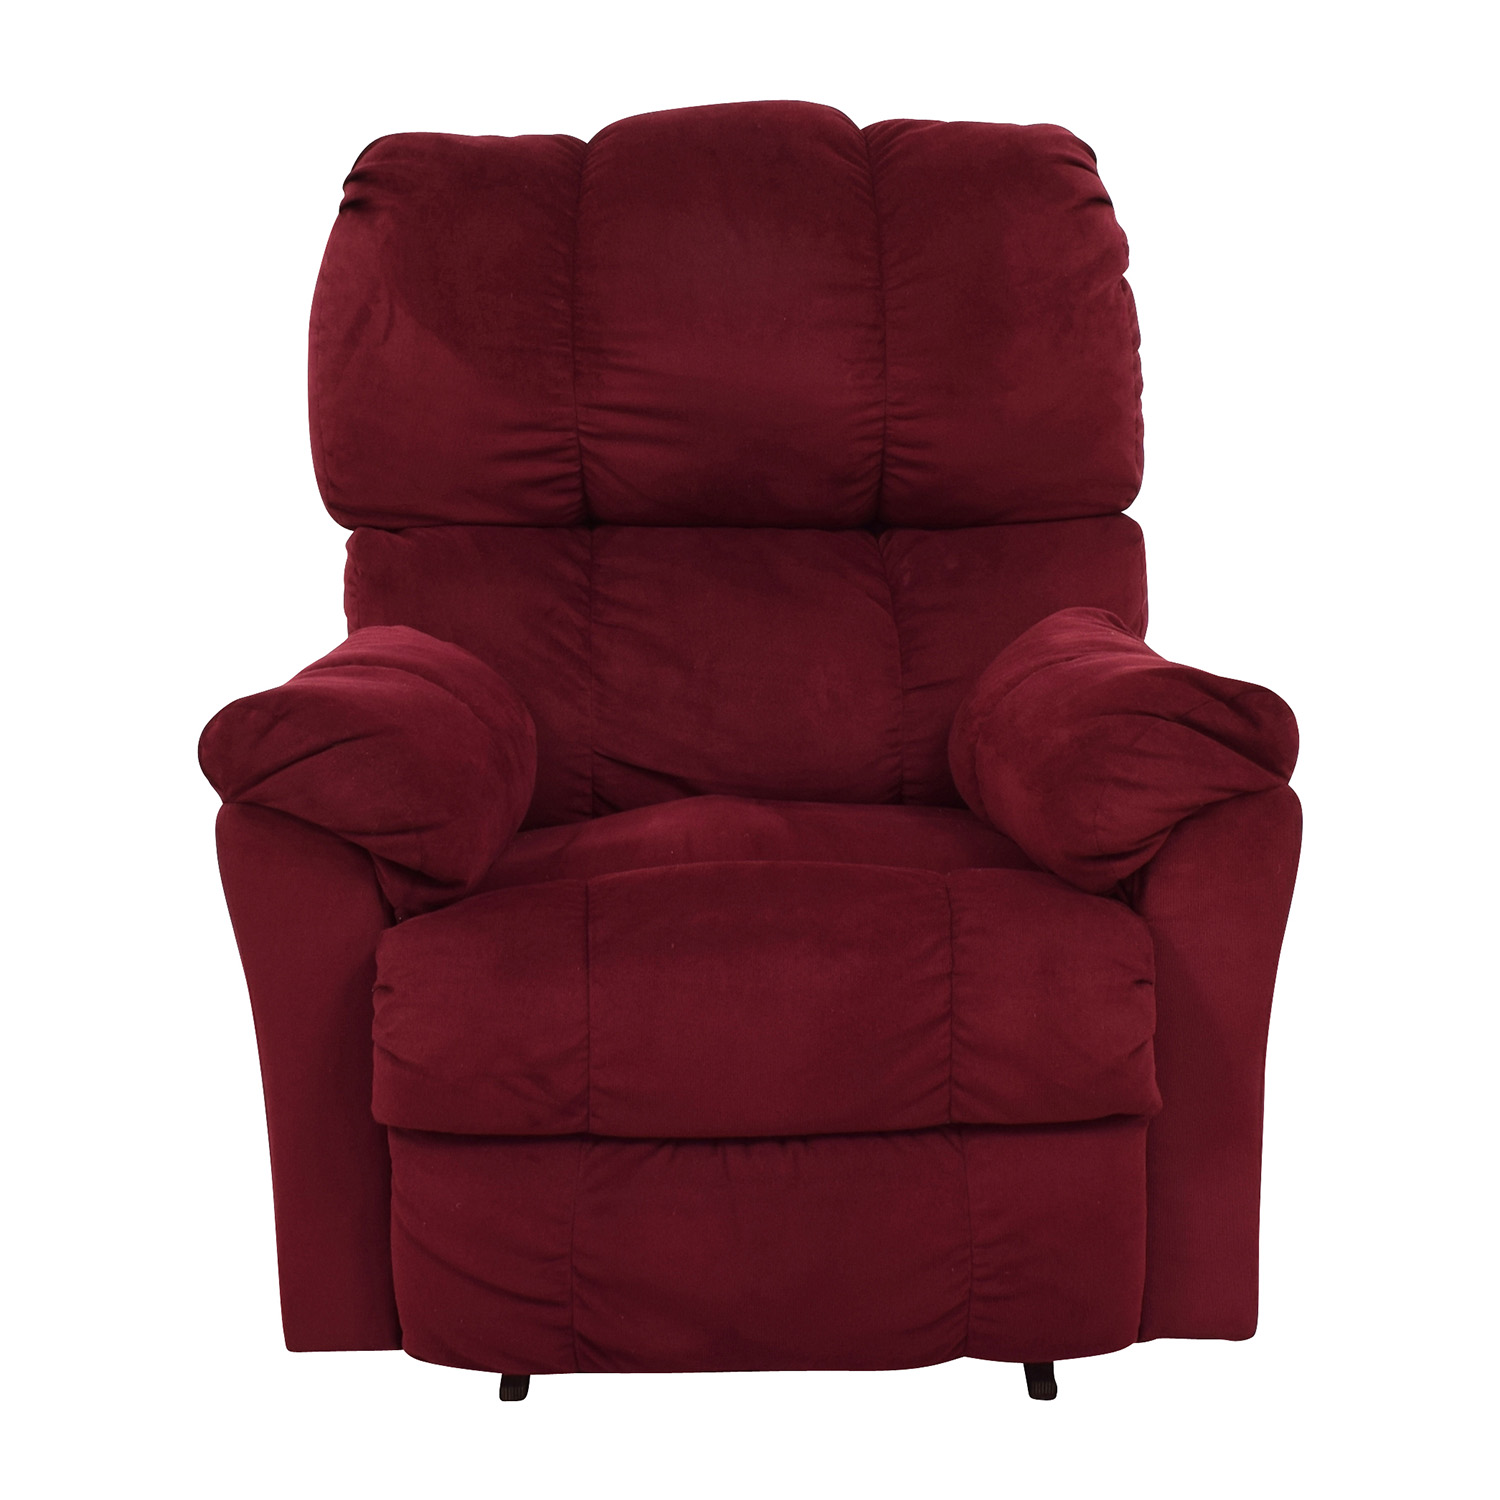 Macys Macys Red Recliner Arm Chair coupon